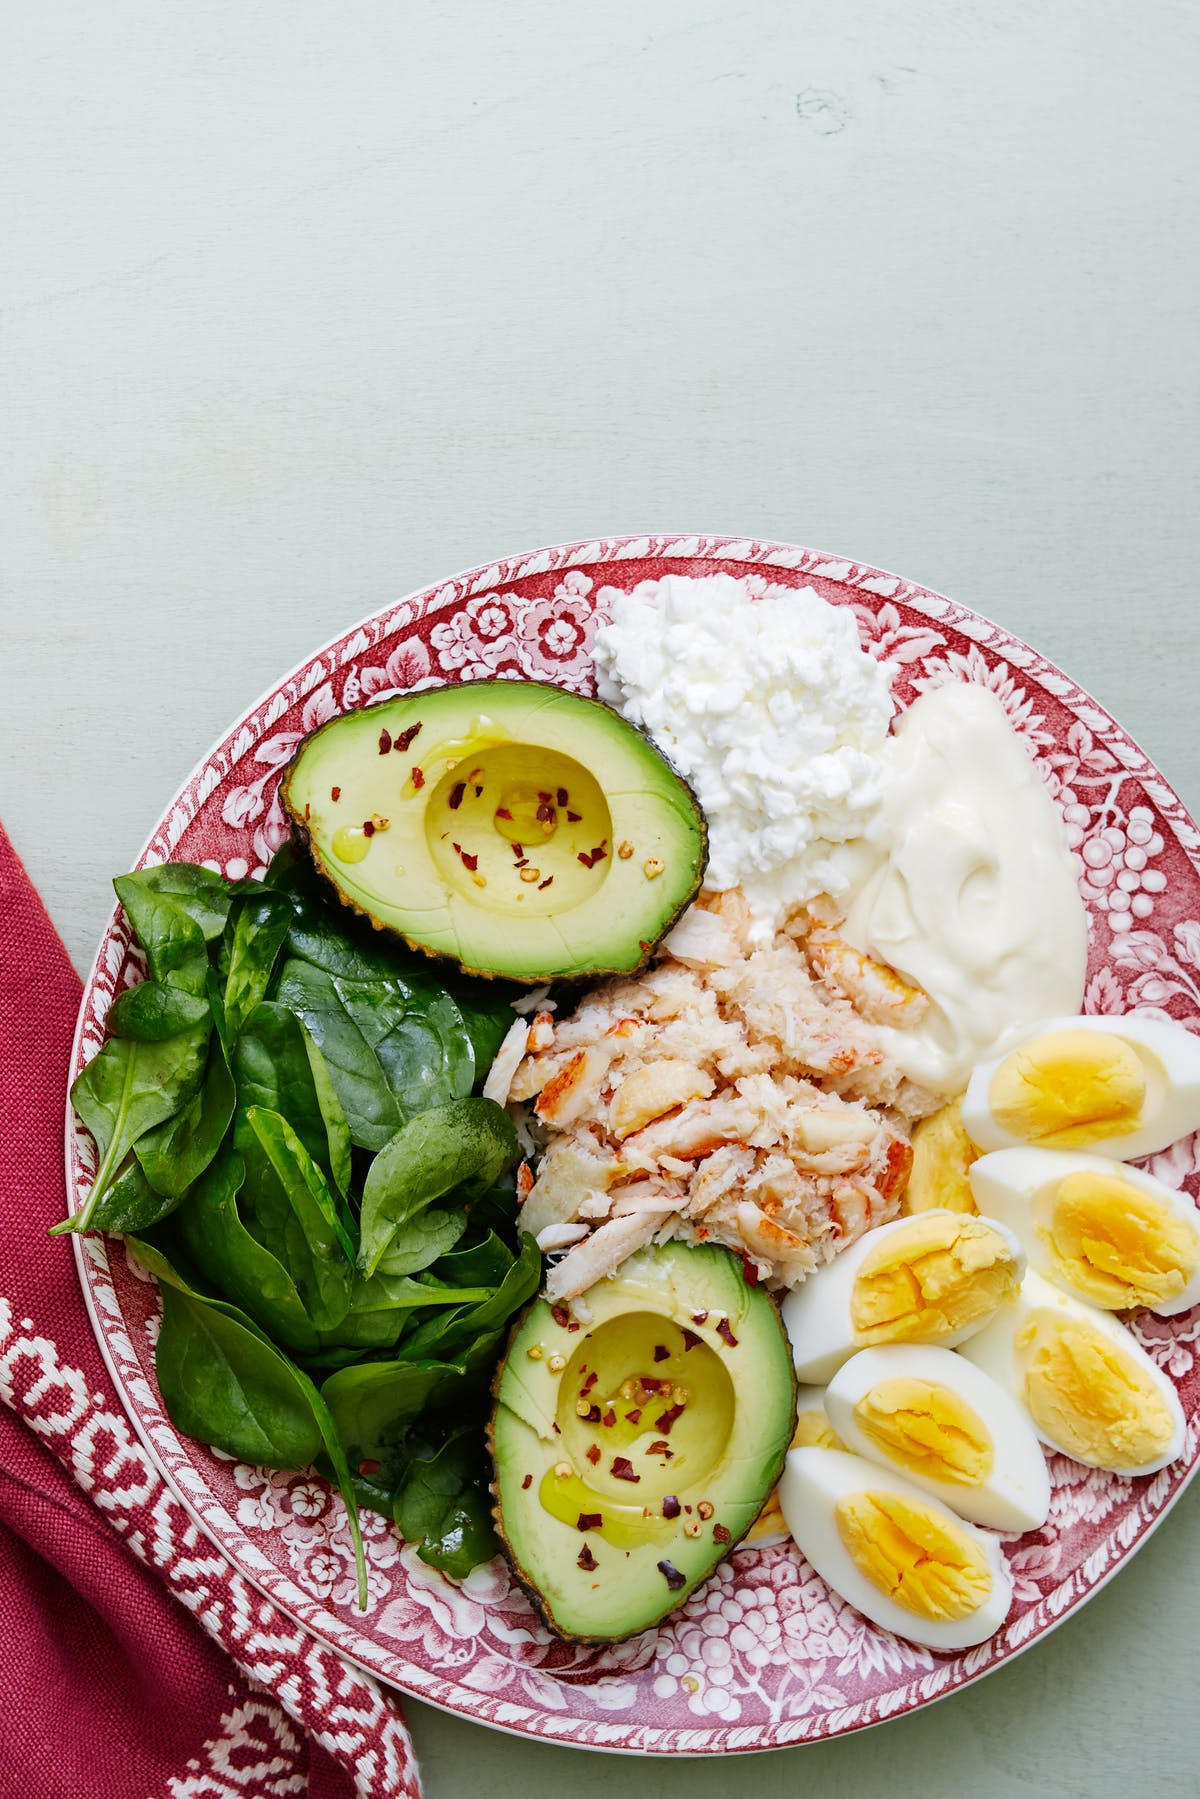 Keto Crab Meat And Egg Plate With Avocado And Mayo Diet Doctor